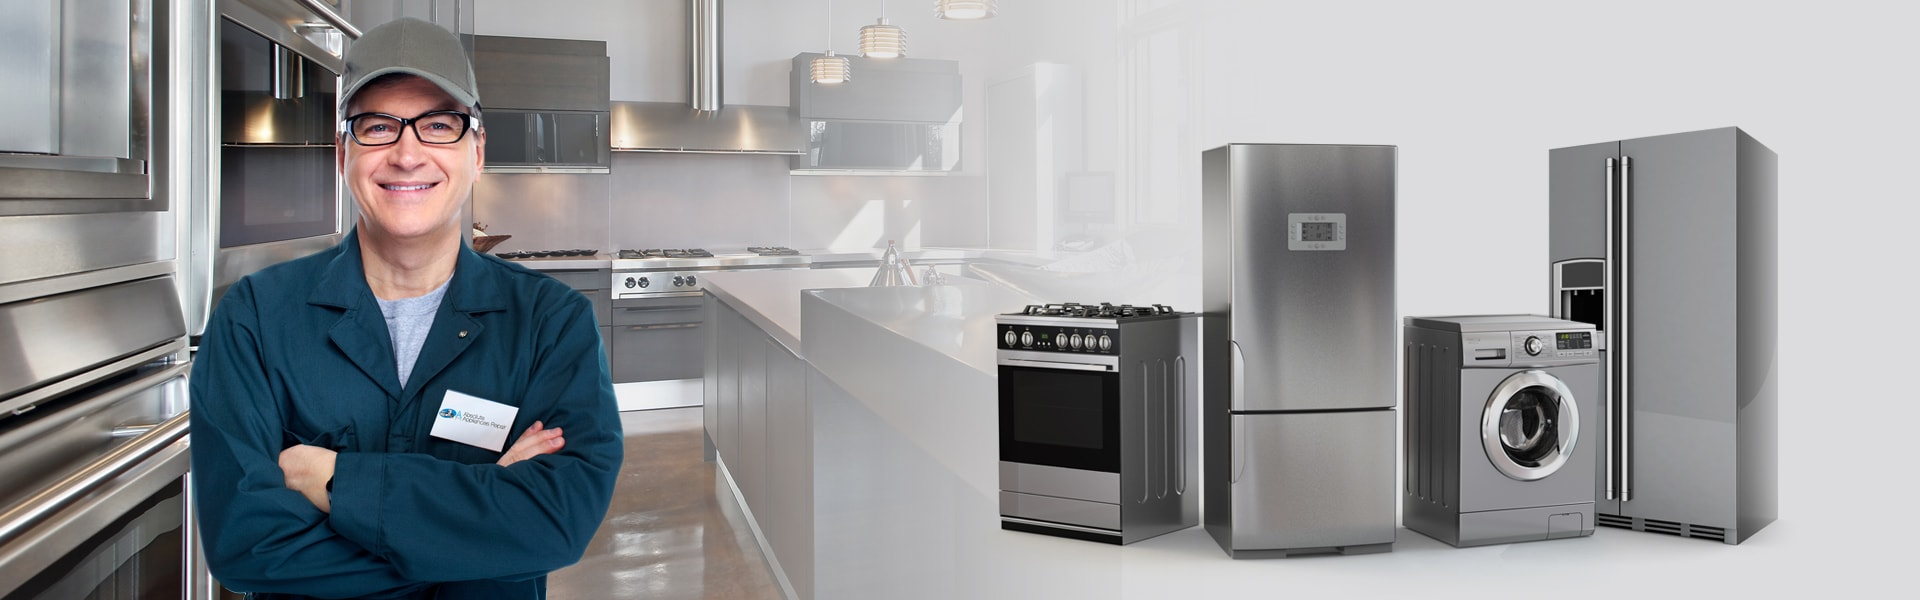 Appliance Repair San Francisco Bay Absolute Appliances